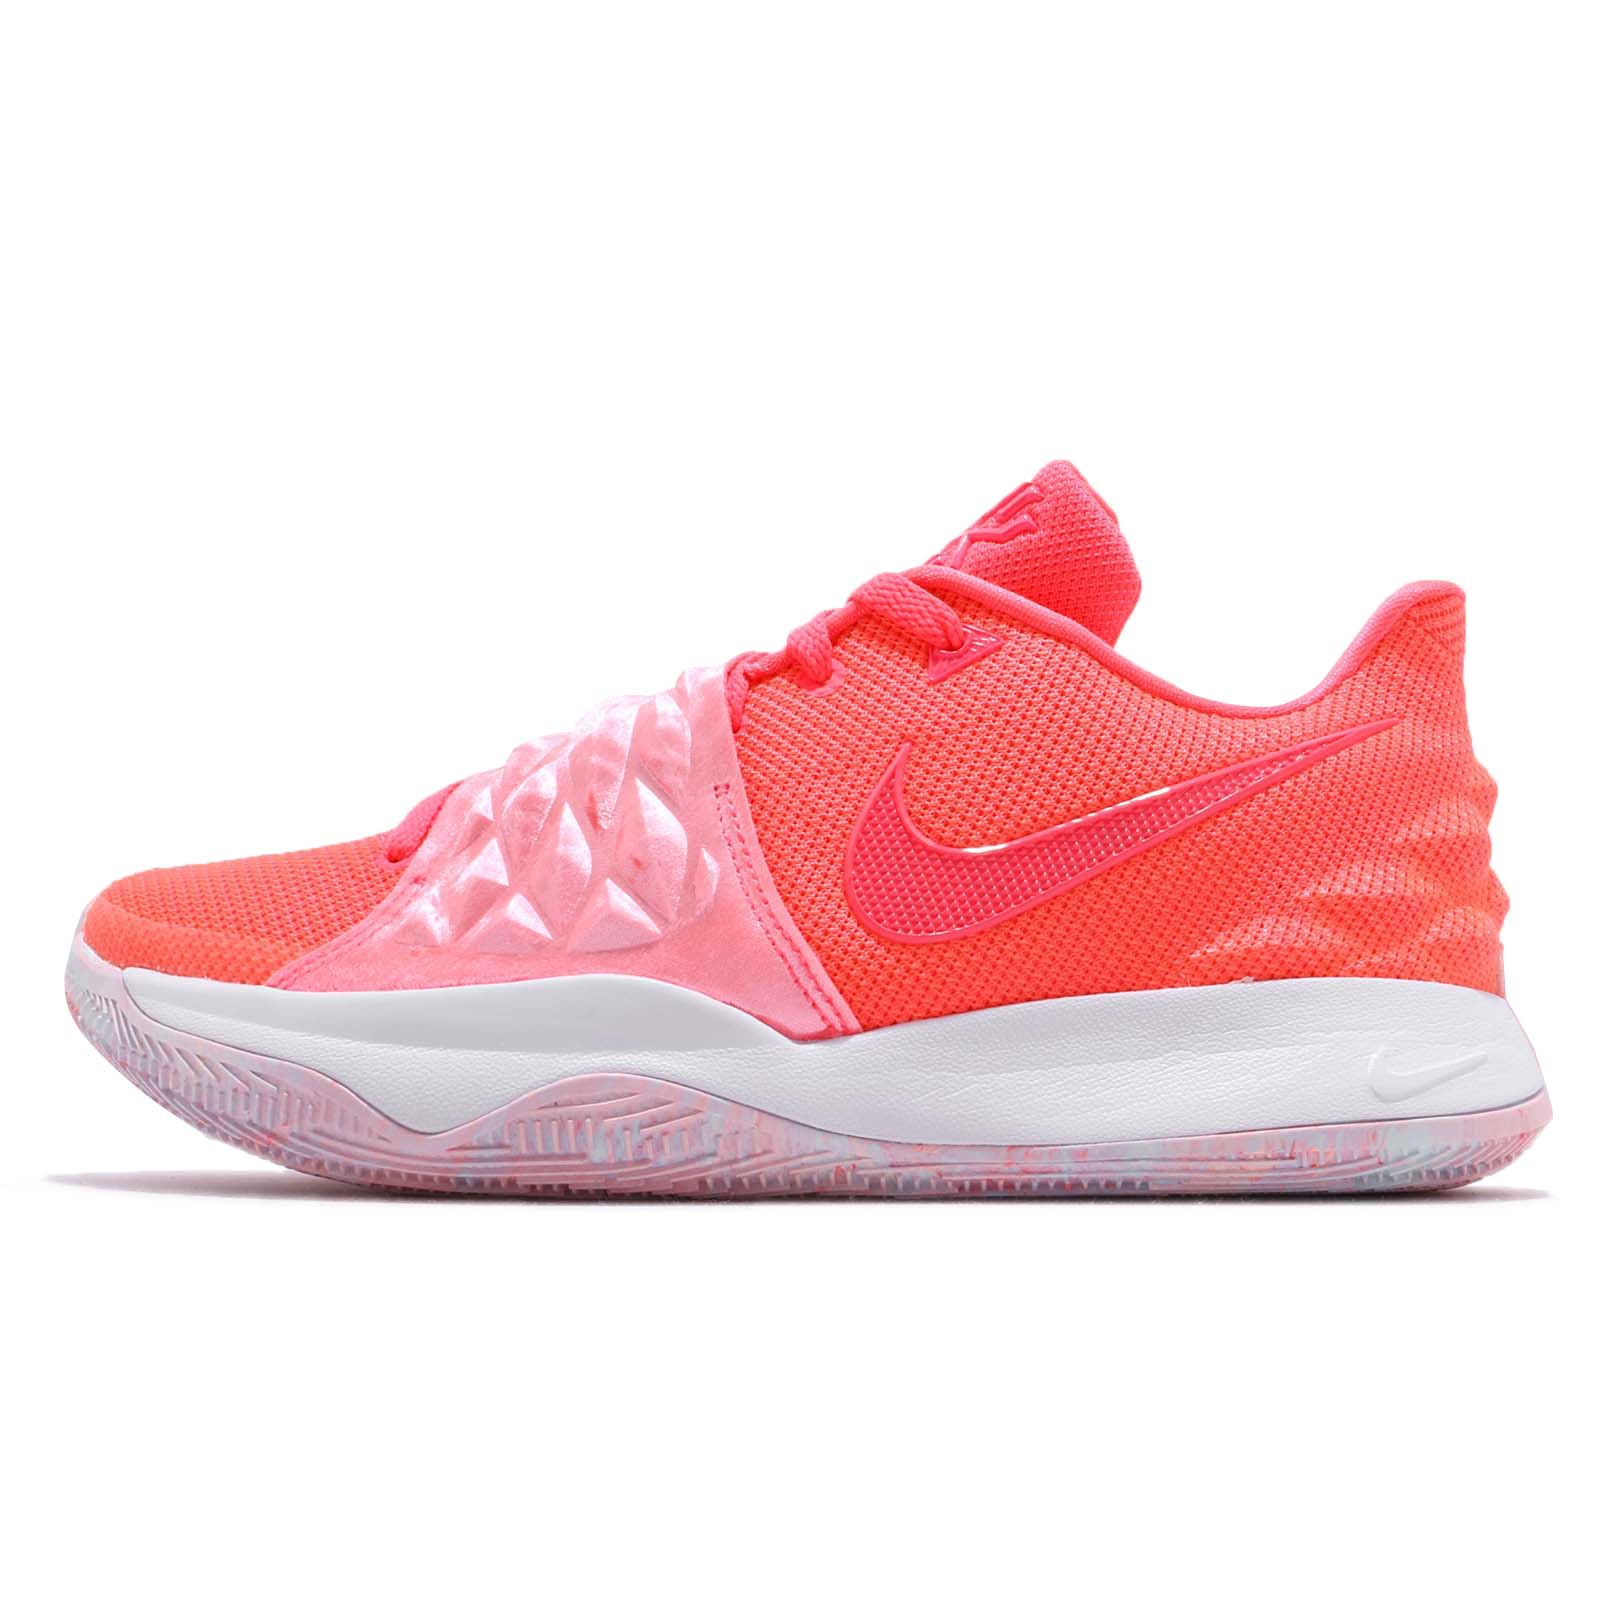 premium selection 7d9c3 b45d9 Details about Nike Kyrie Low EP 1 I Irving Hot Punch Men Basketball Shoes  Sneakers AO8980-600